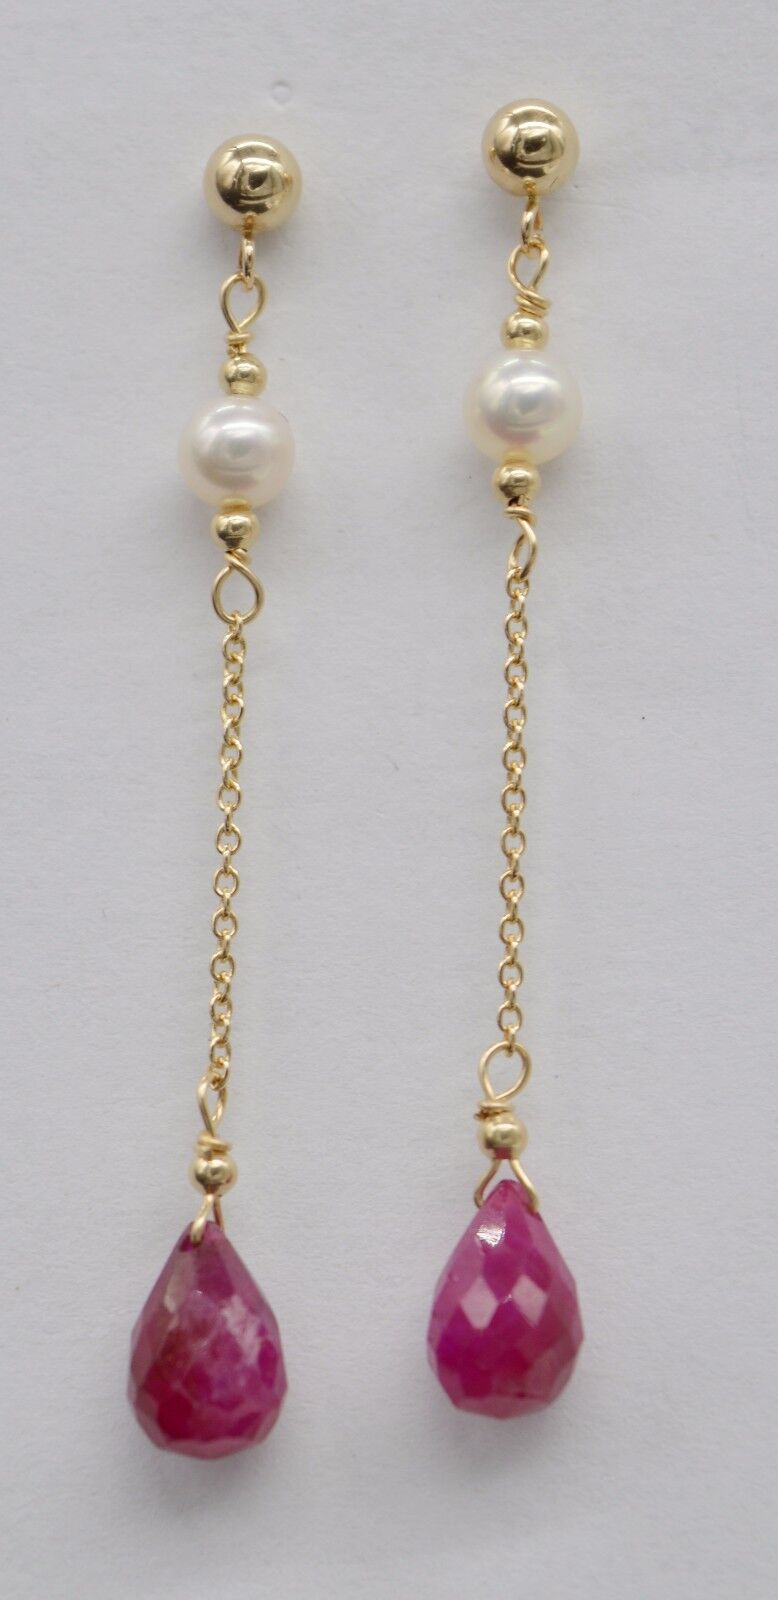 BE-148 New 14K Solid gold Natural Ruby with Cultured Pearl Long Drop Earrings